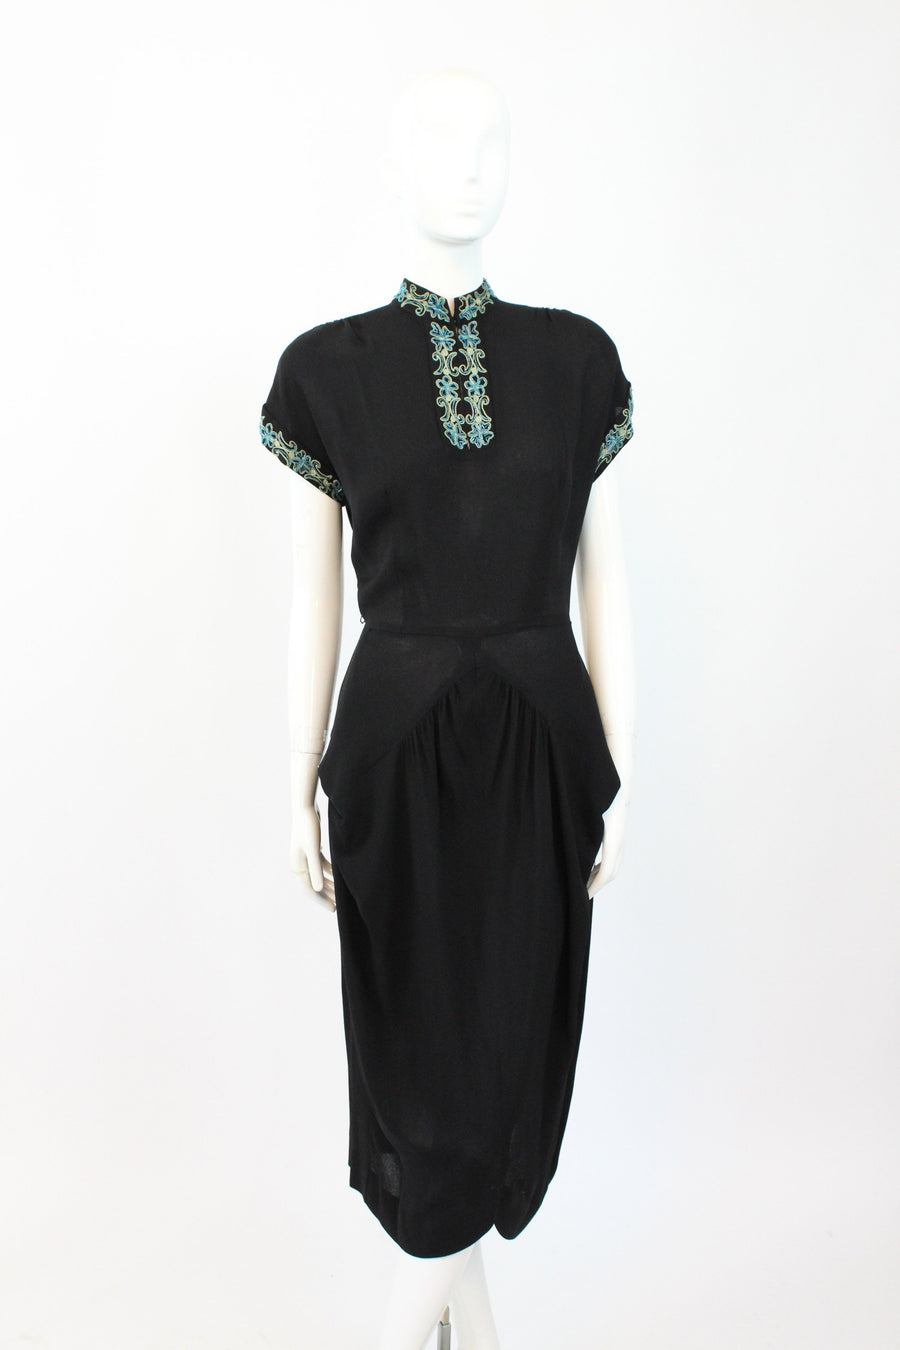 1940s rayon beaded dress | Asian inspired | medium